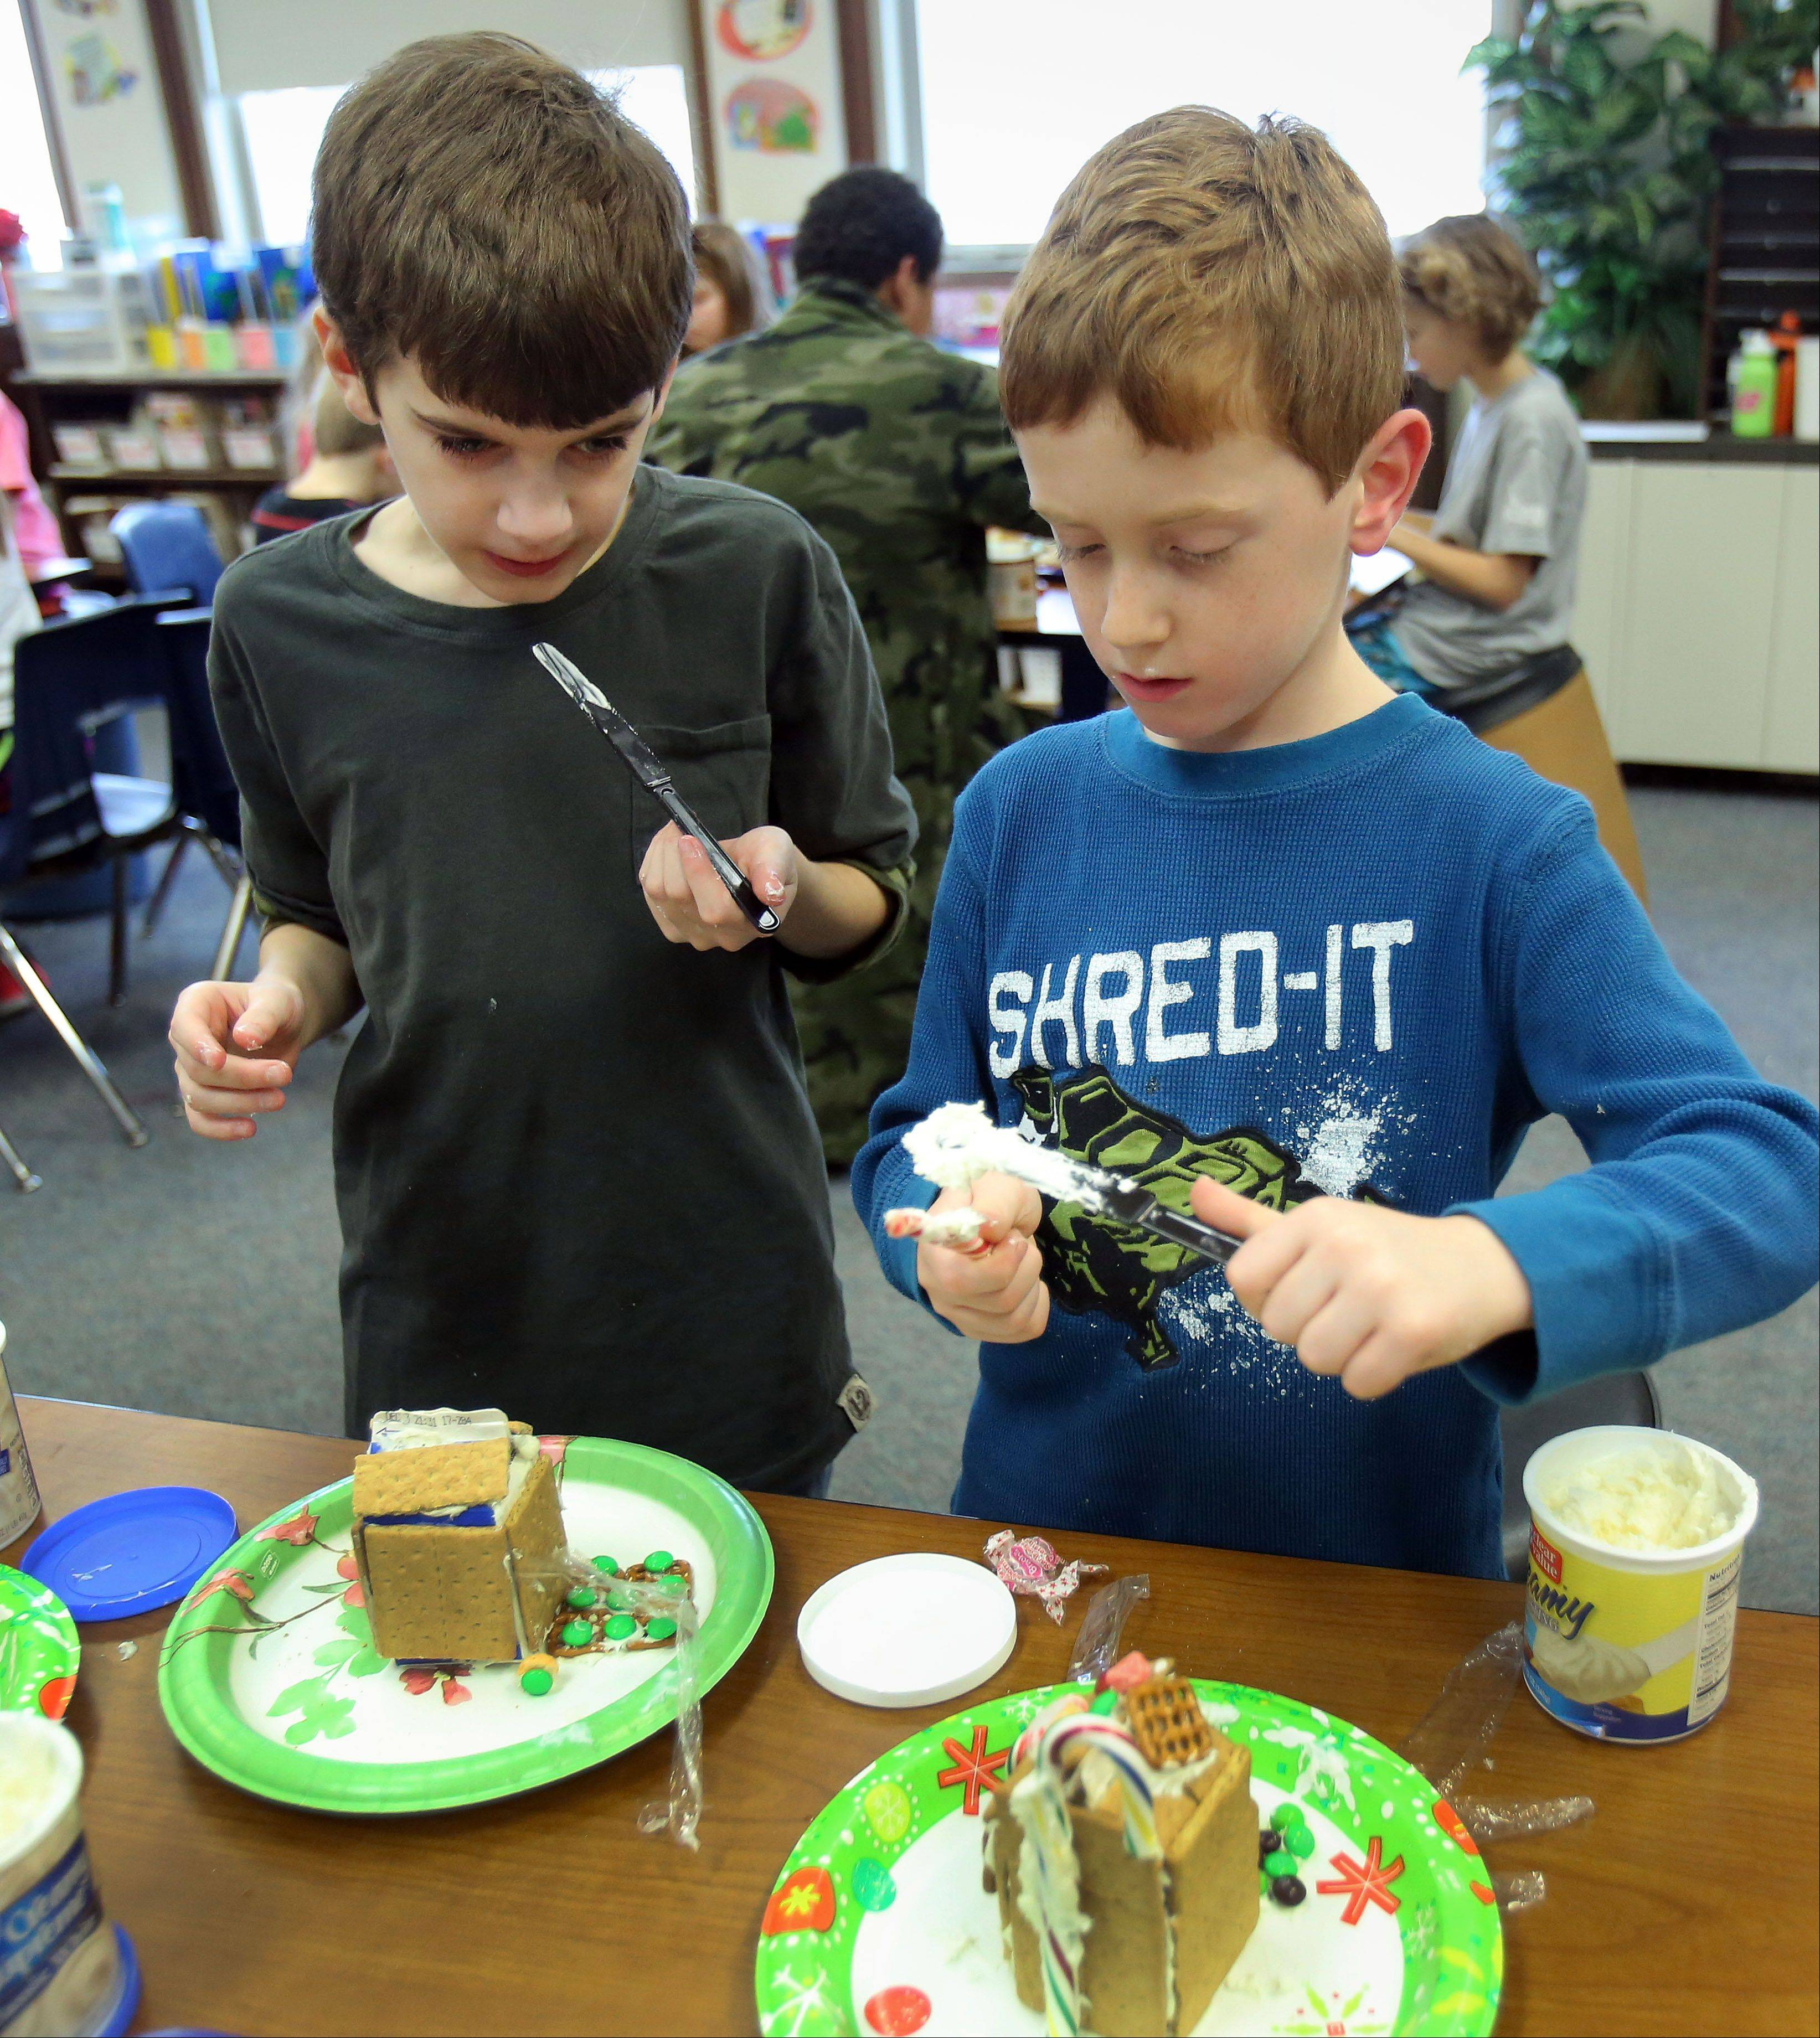 First-grader Jordan Coughlin, right, and his fifth grade book buddy, Ethan Early, work to create gingerbread houses at Rockland Elementary School in Libertyville.